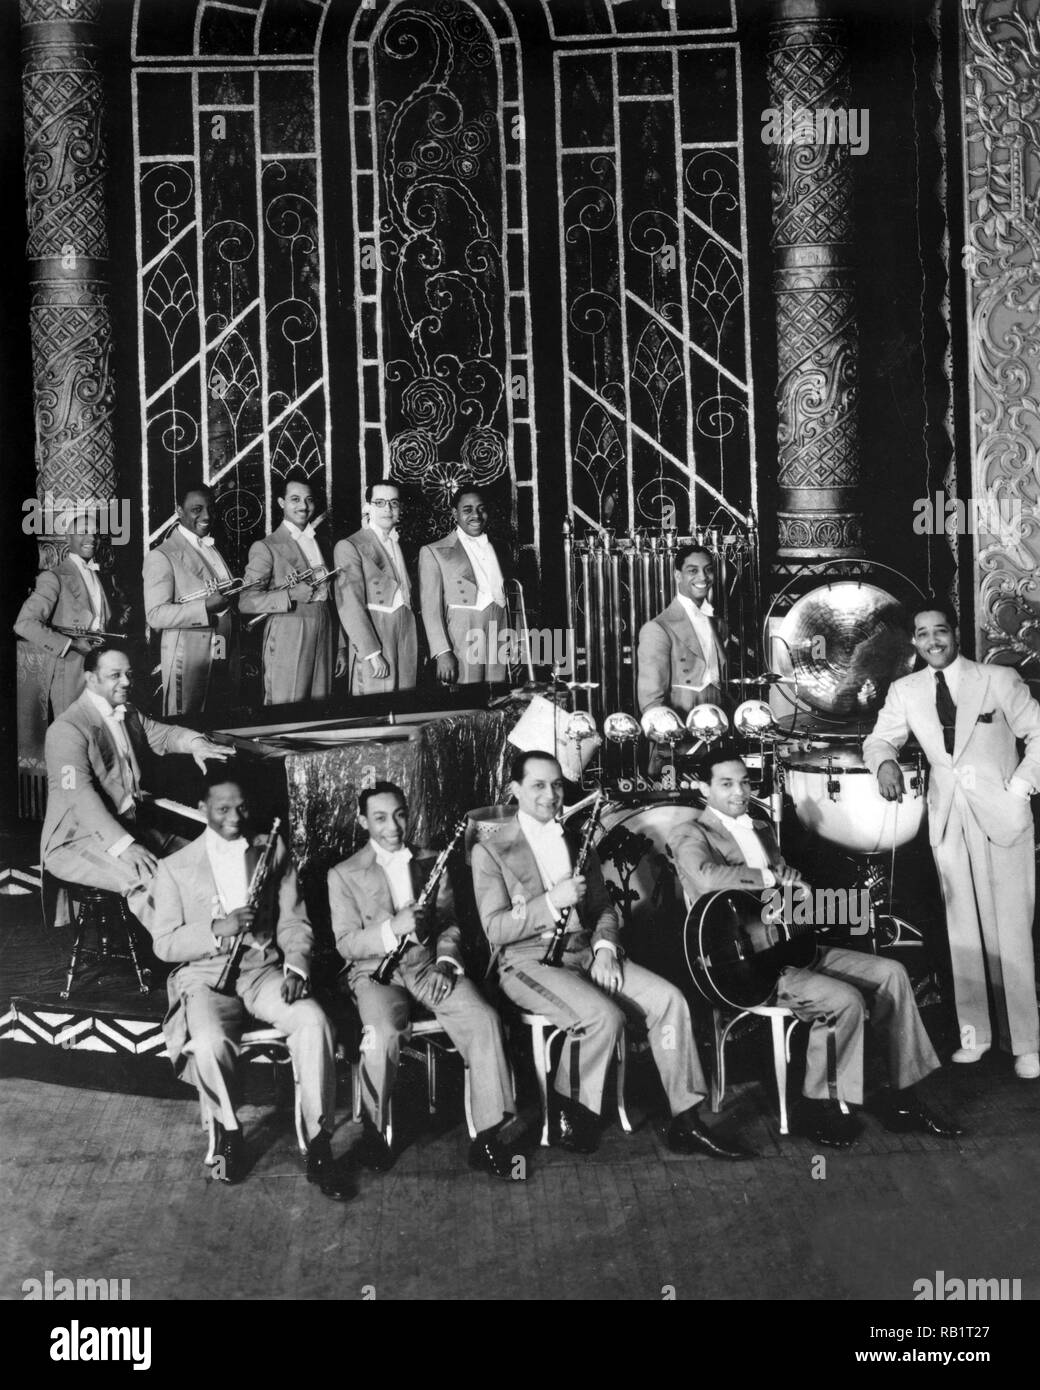 American bandleader and composer Duke Ellington posing with his orchestra on a stage at the Regal Theatre, Chicago. L-R includes: Freddy Jenkins, Wellman Braud, Cotie Williams, Harry Carney, Juan Tizol, Johnny Hodges, Tricky Sam Nanton, Barney Bigard, Sonny Greer, Fred Guy and Ellington. 1931. - Stock Image